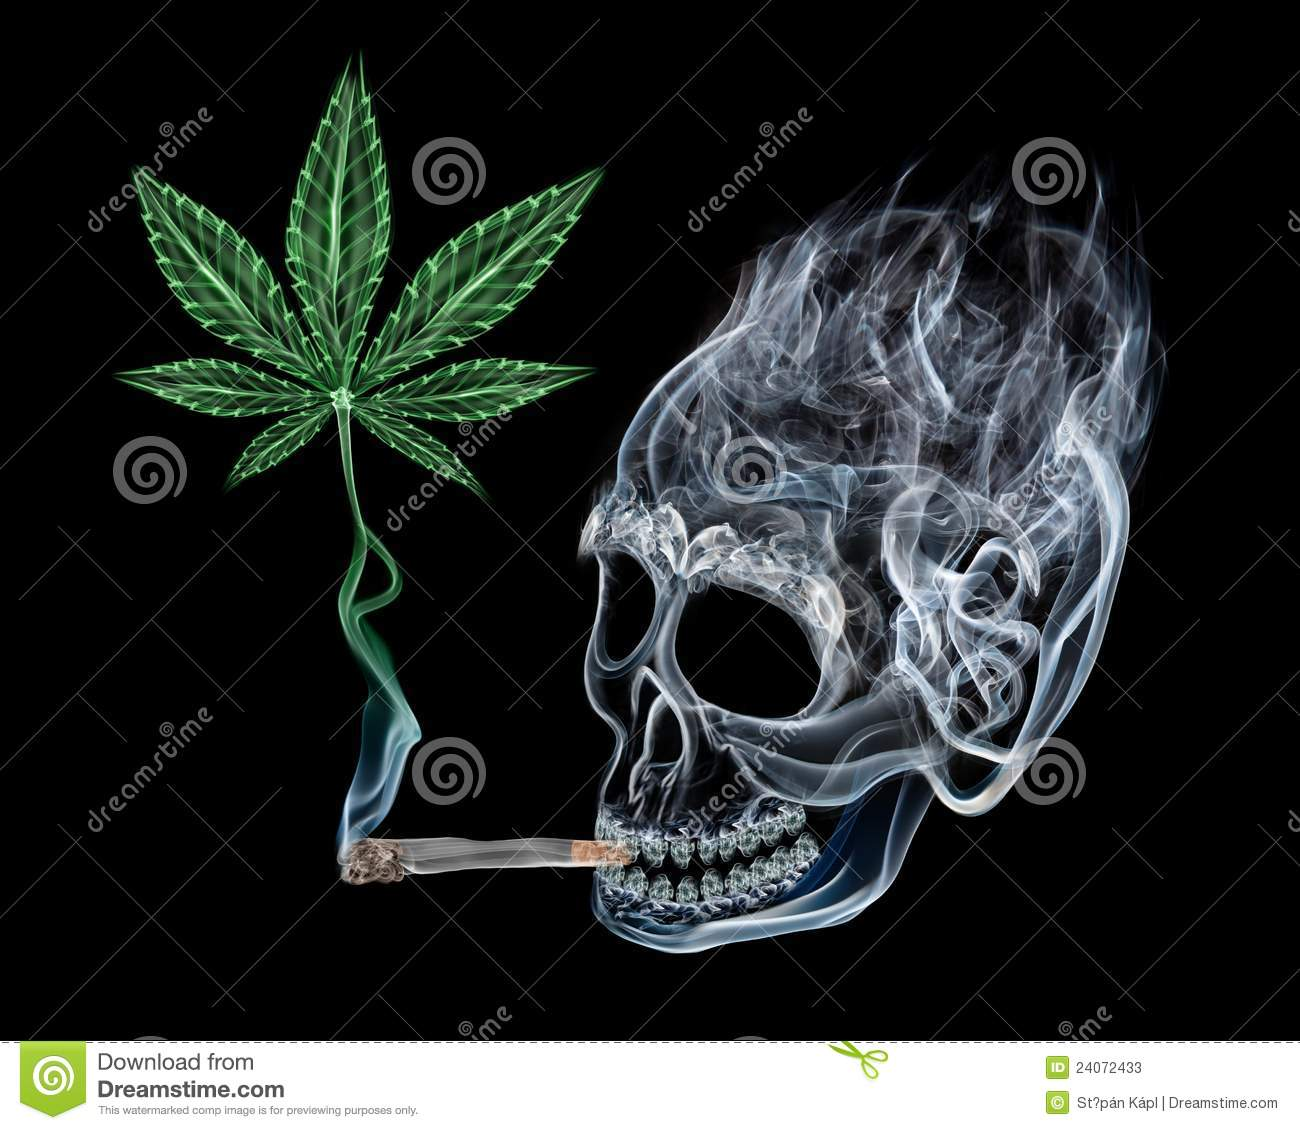 tobacco as the main source for fatal illnesses in the united states Smoking is the leading cause of lung cancer smoking causes an estimated  160,000 cancer deaths in the us every year (american cancer society, 2004)  and the  comparison data calculated using the centers for disease control  and.